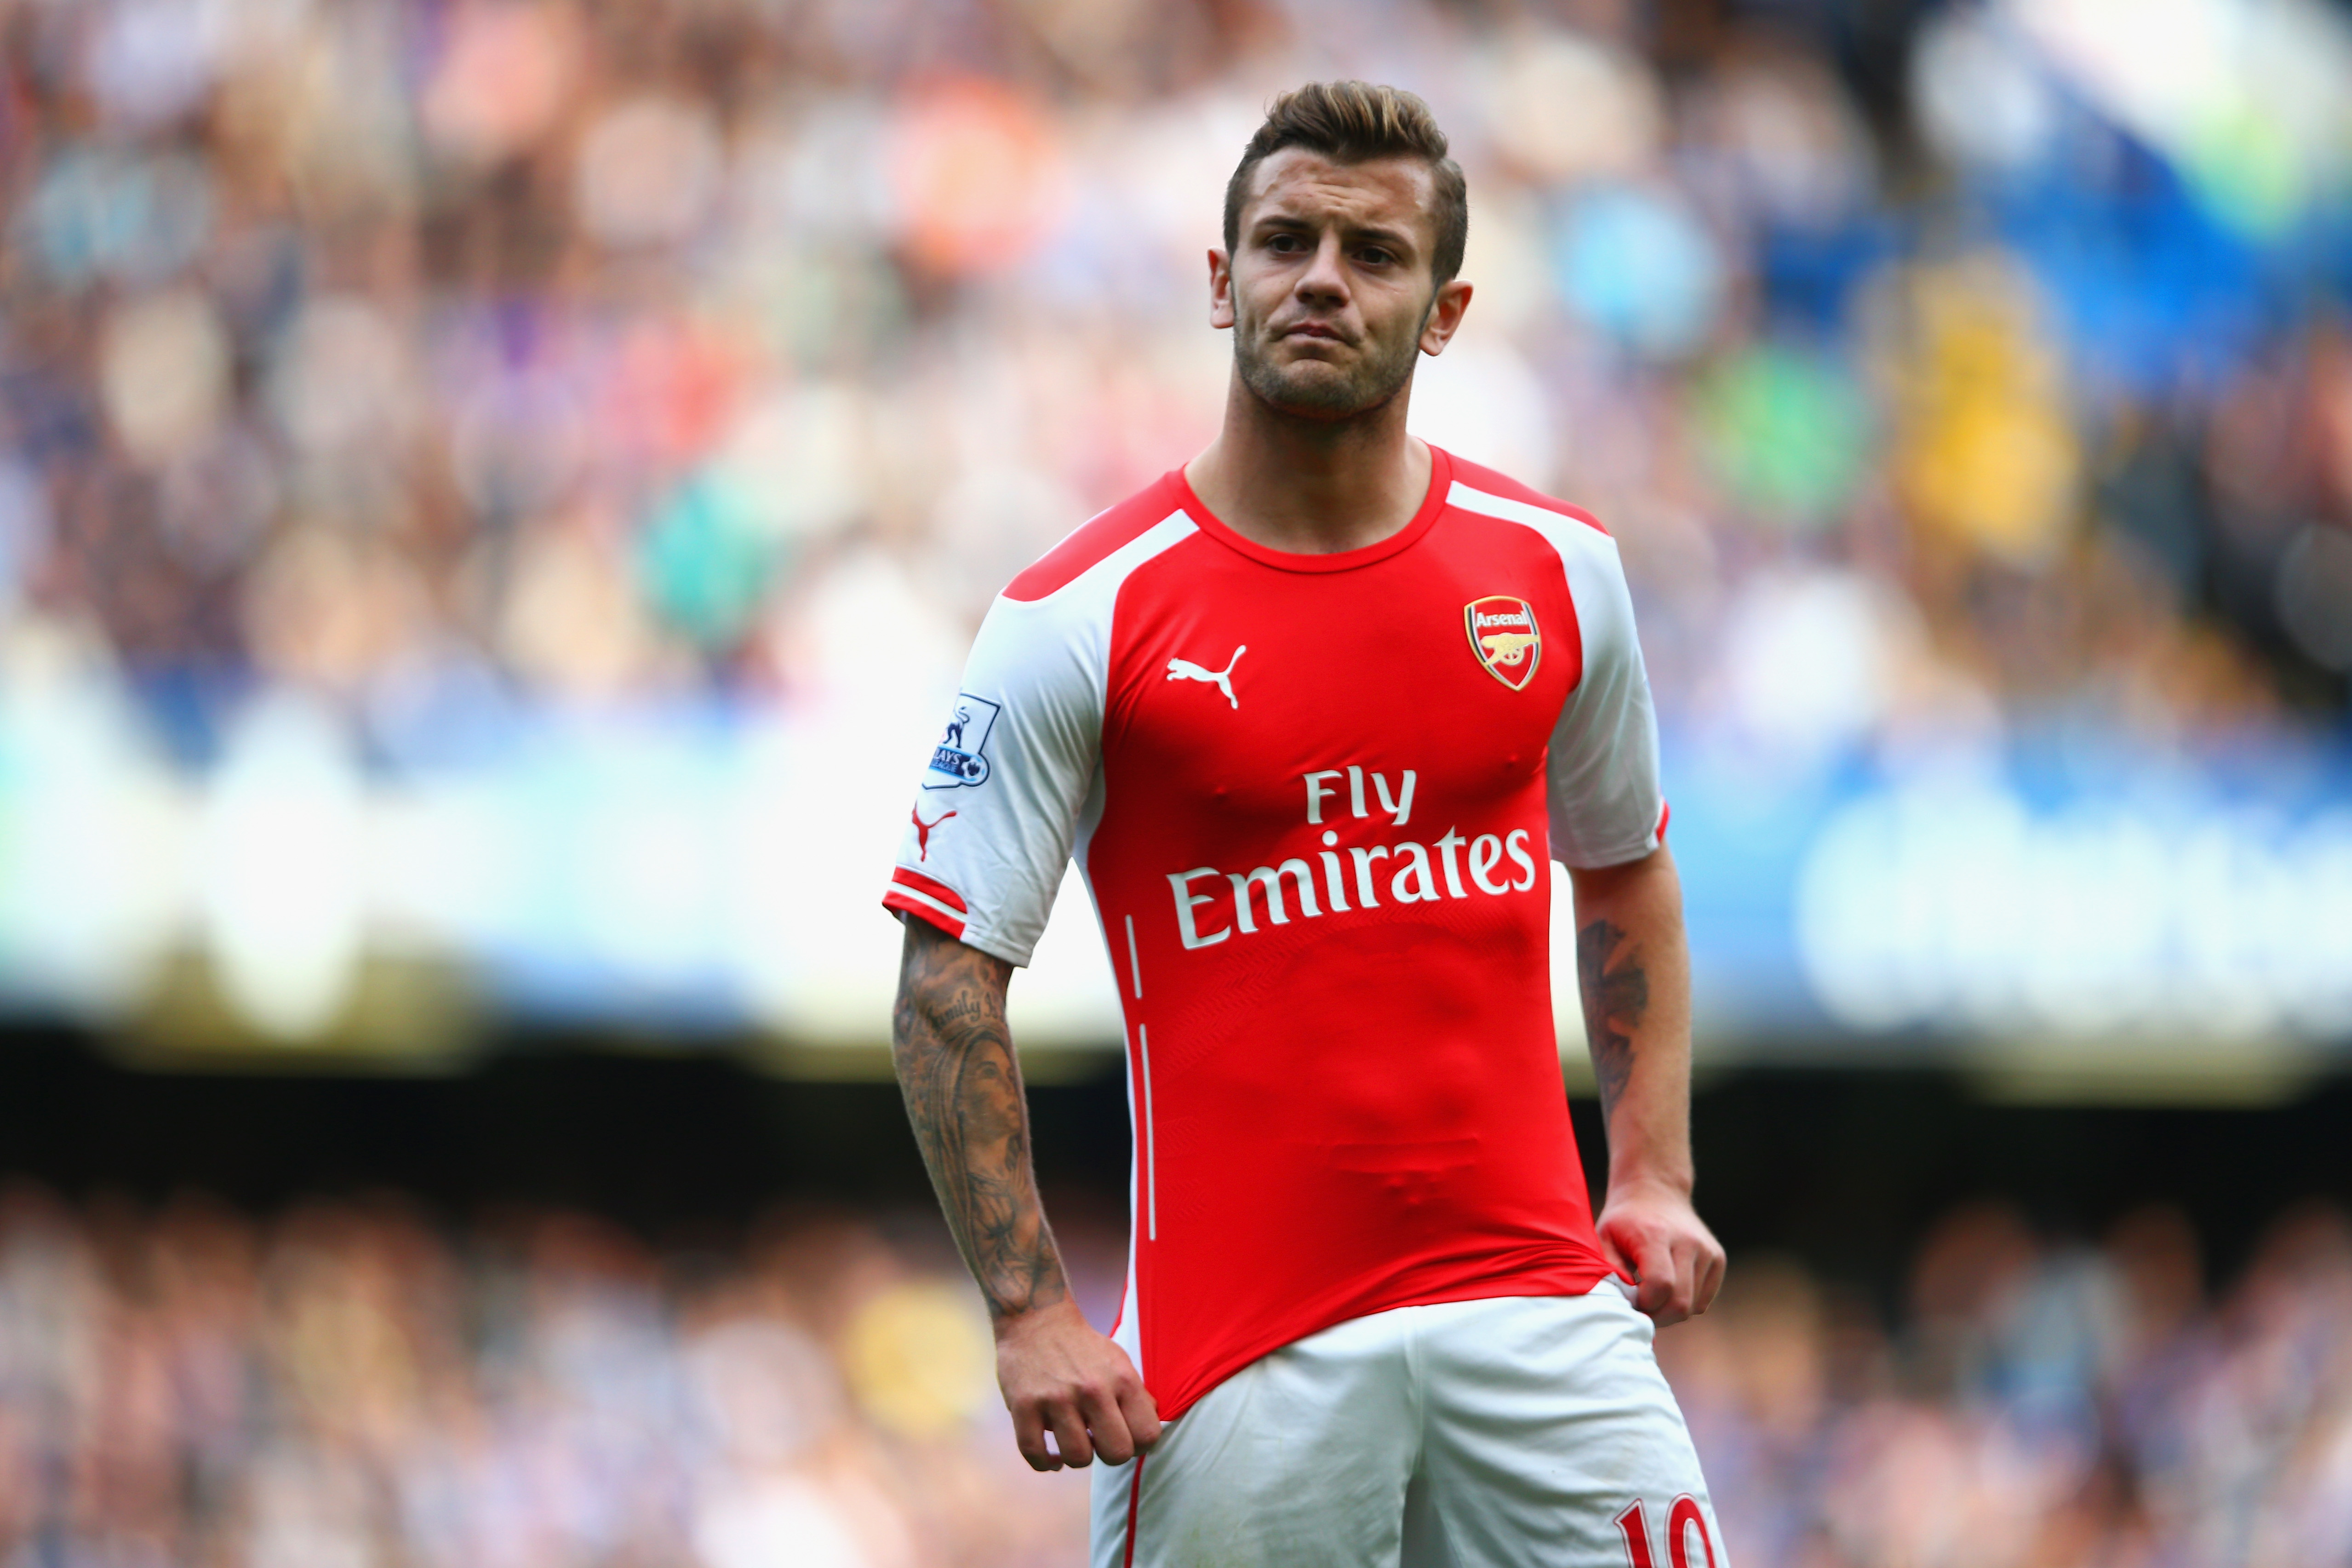 Abou Diaby, Jack Wilshere and Arsenal lead the way in days missed through injury of Premier League players